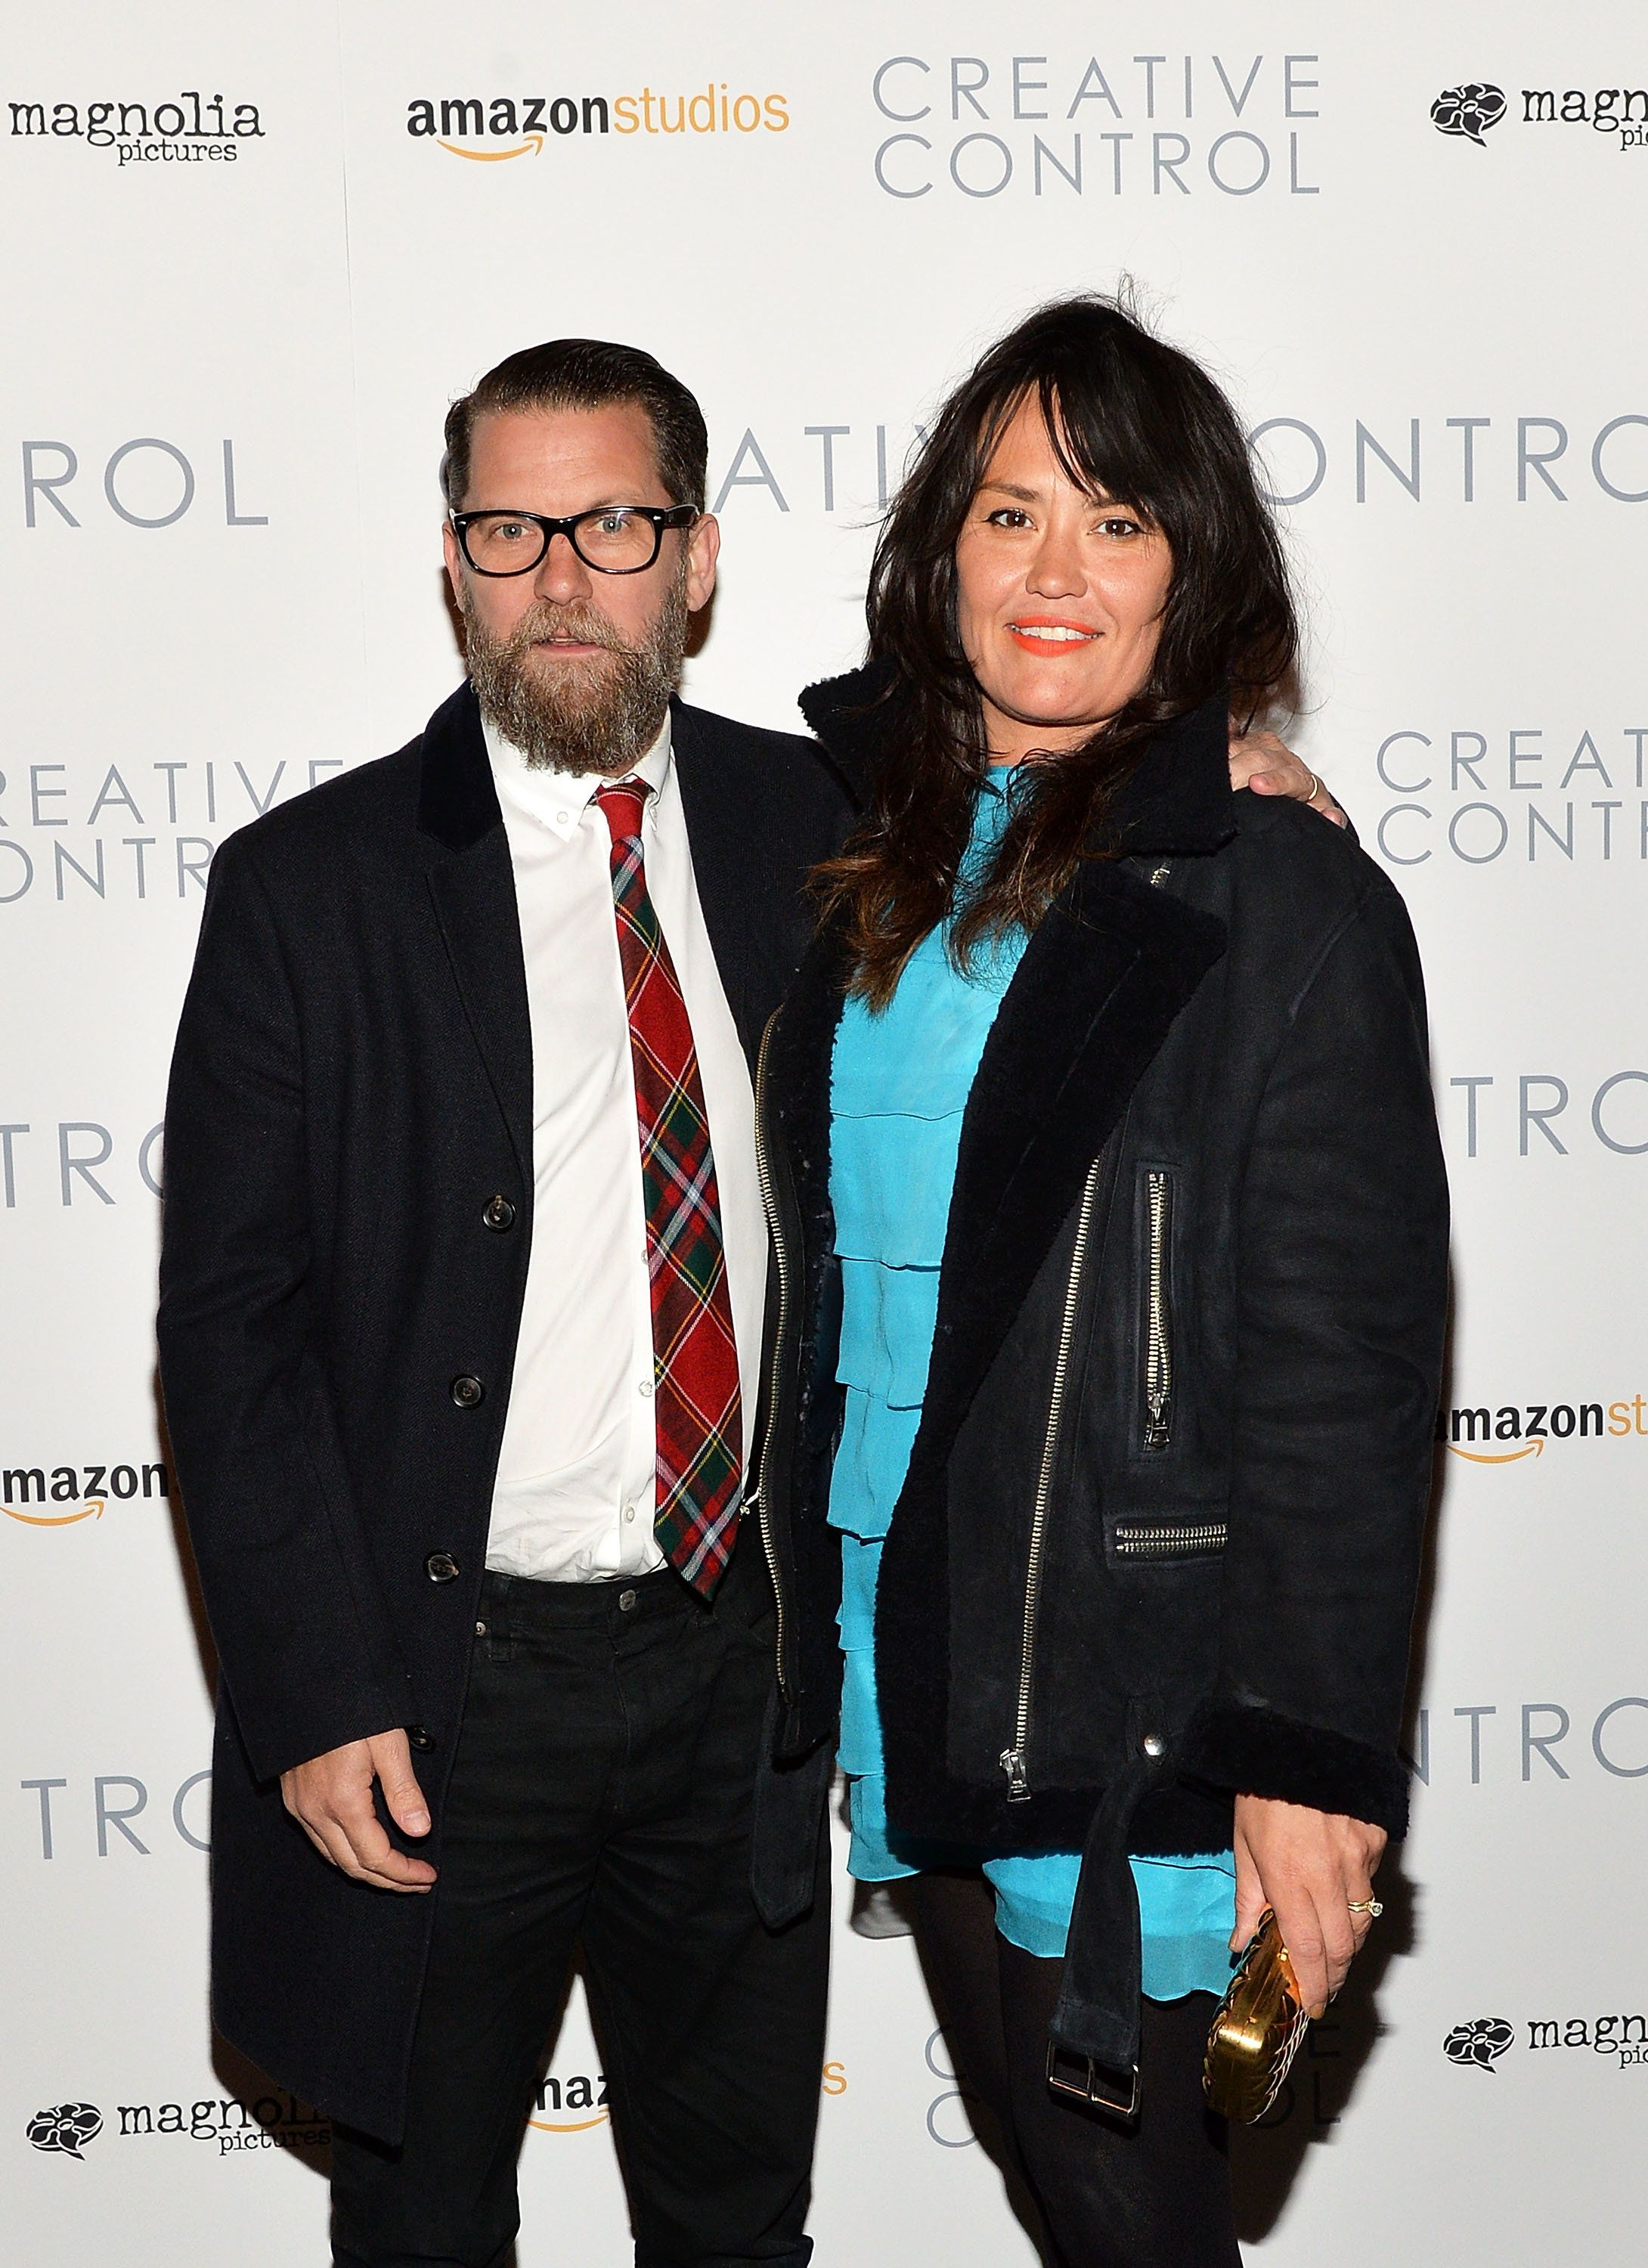 NEW YORK, NY - MARCH 03:  Gavin McInnes and Emily Jendrisak attend 'Creative Control' New York Premiere at Sunshine Landmark on March 3, 2016 in New York City.  (Photo by Slaven Vlasic/Getty Images)